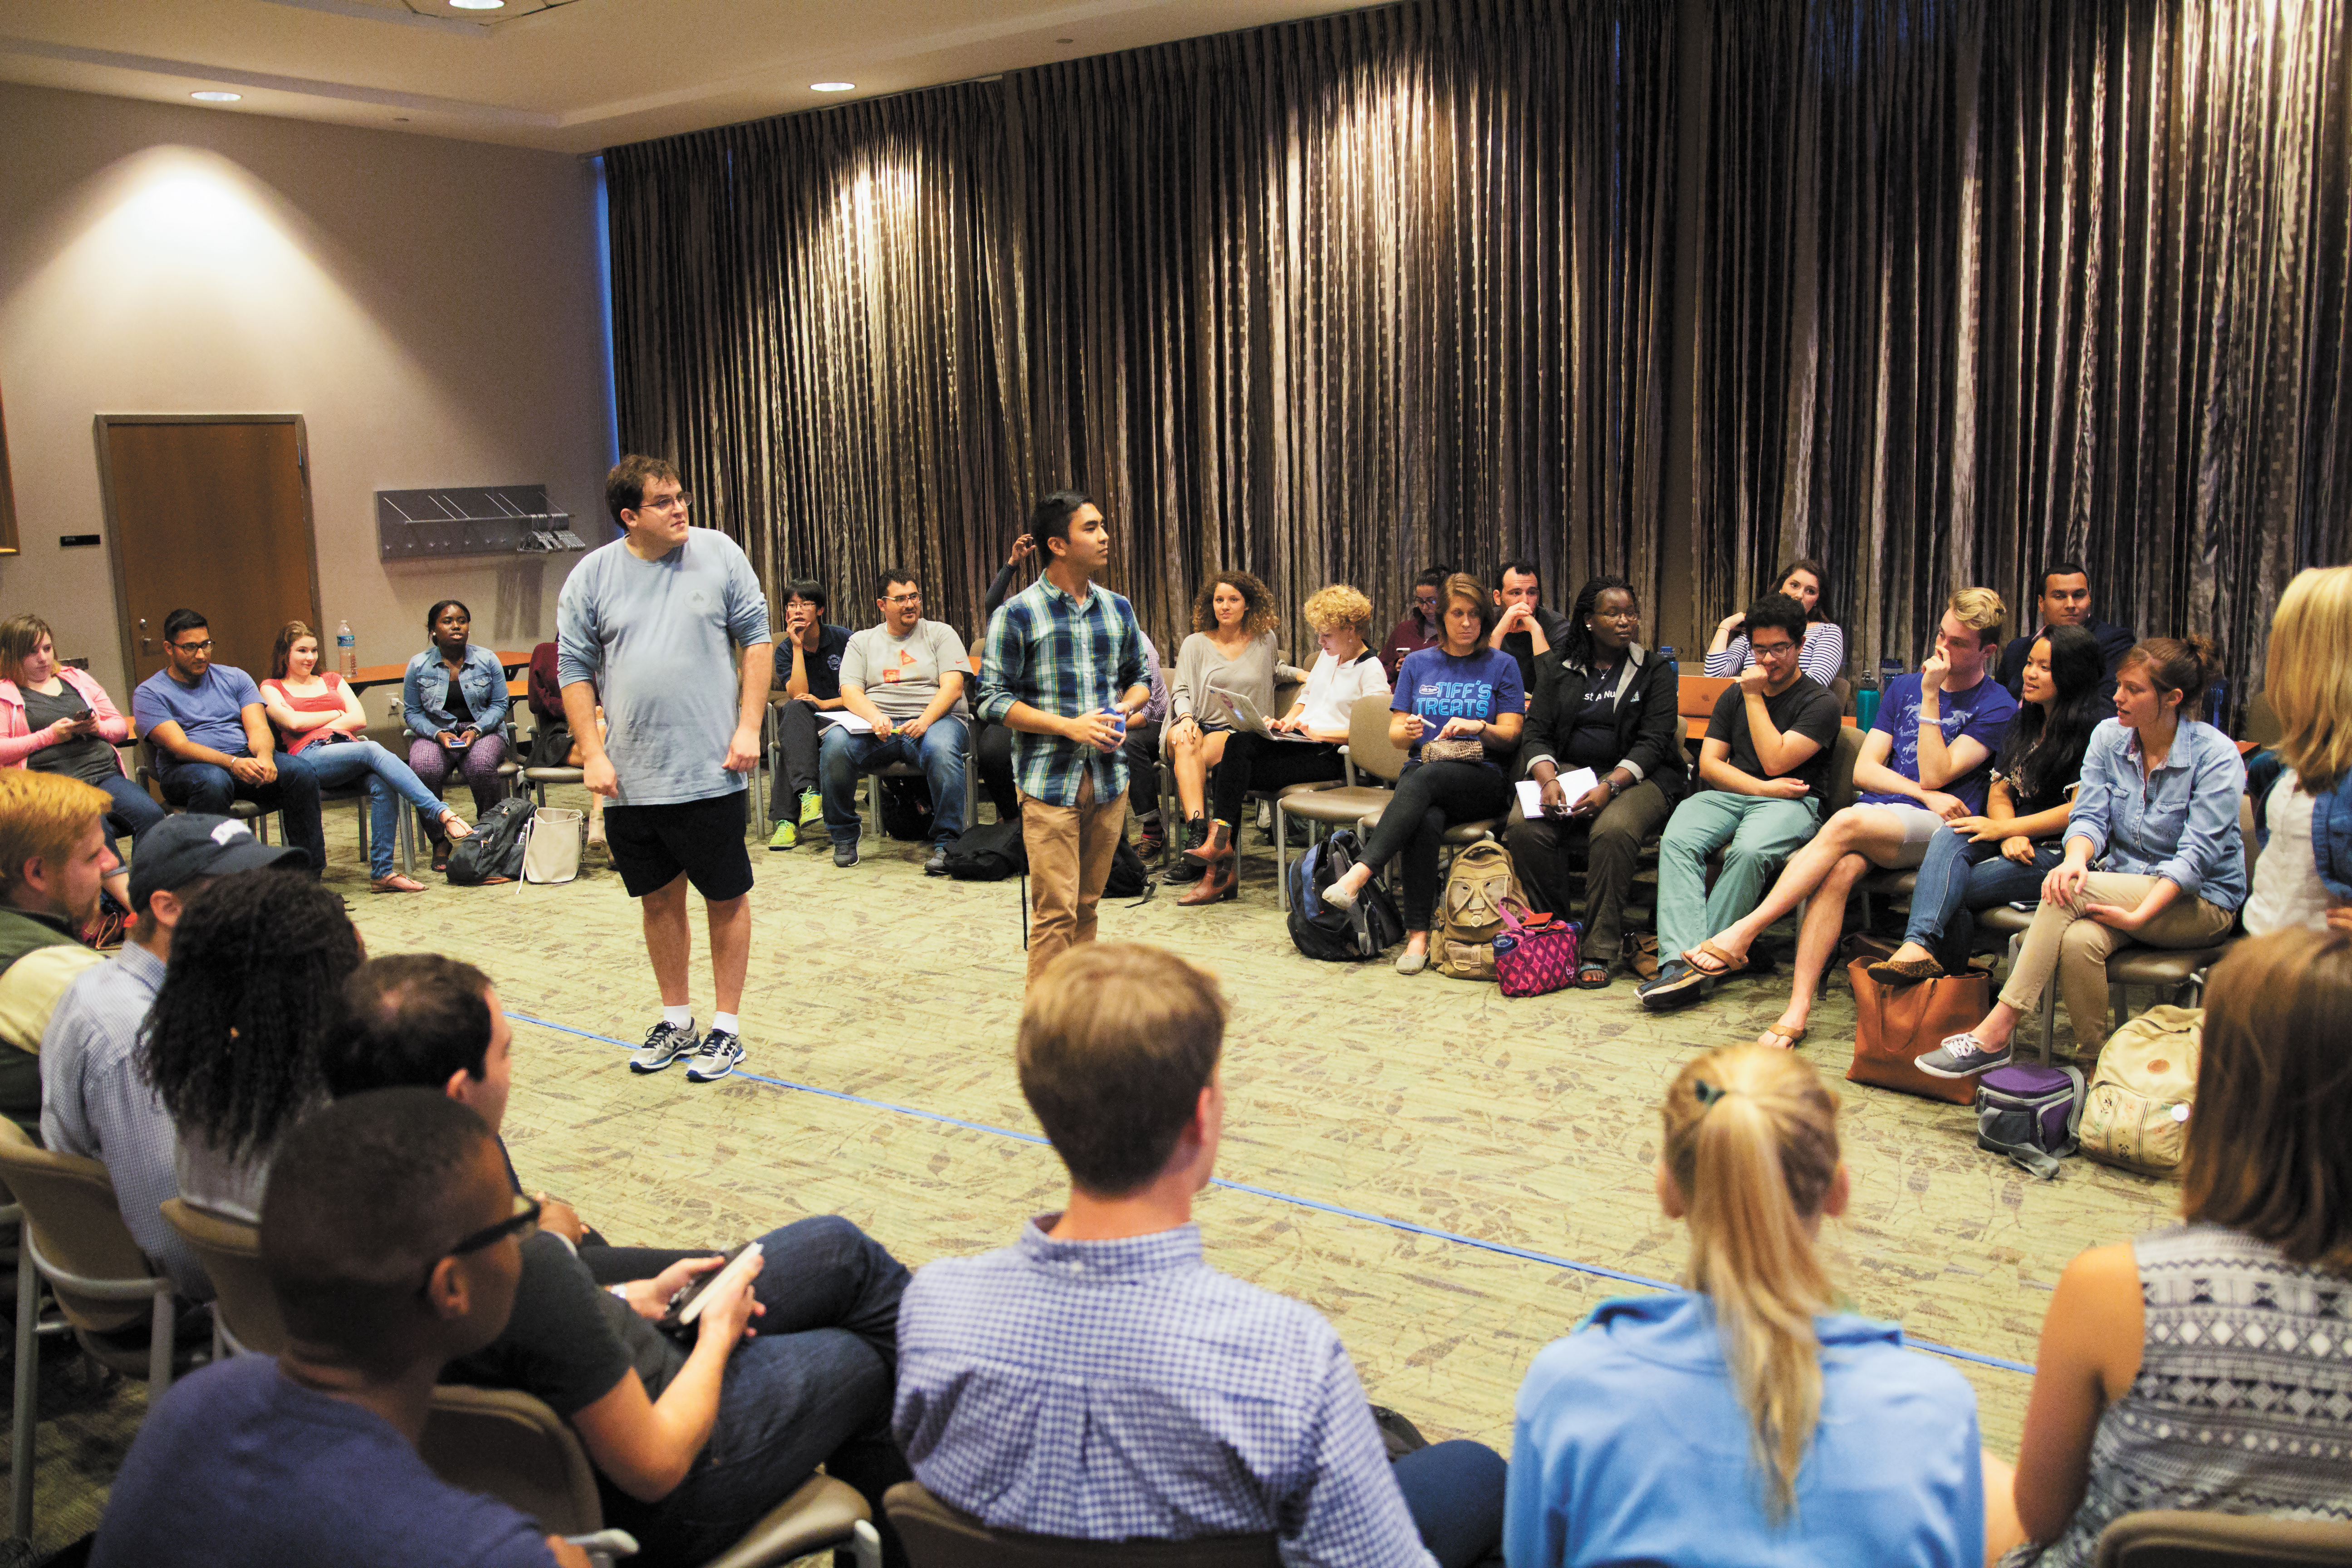 SGA Roundtable Addresses Lack of Graduate Student Voice